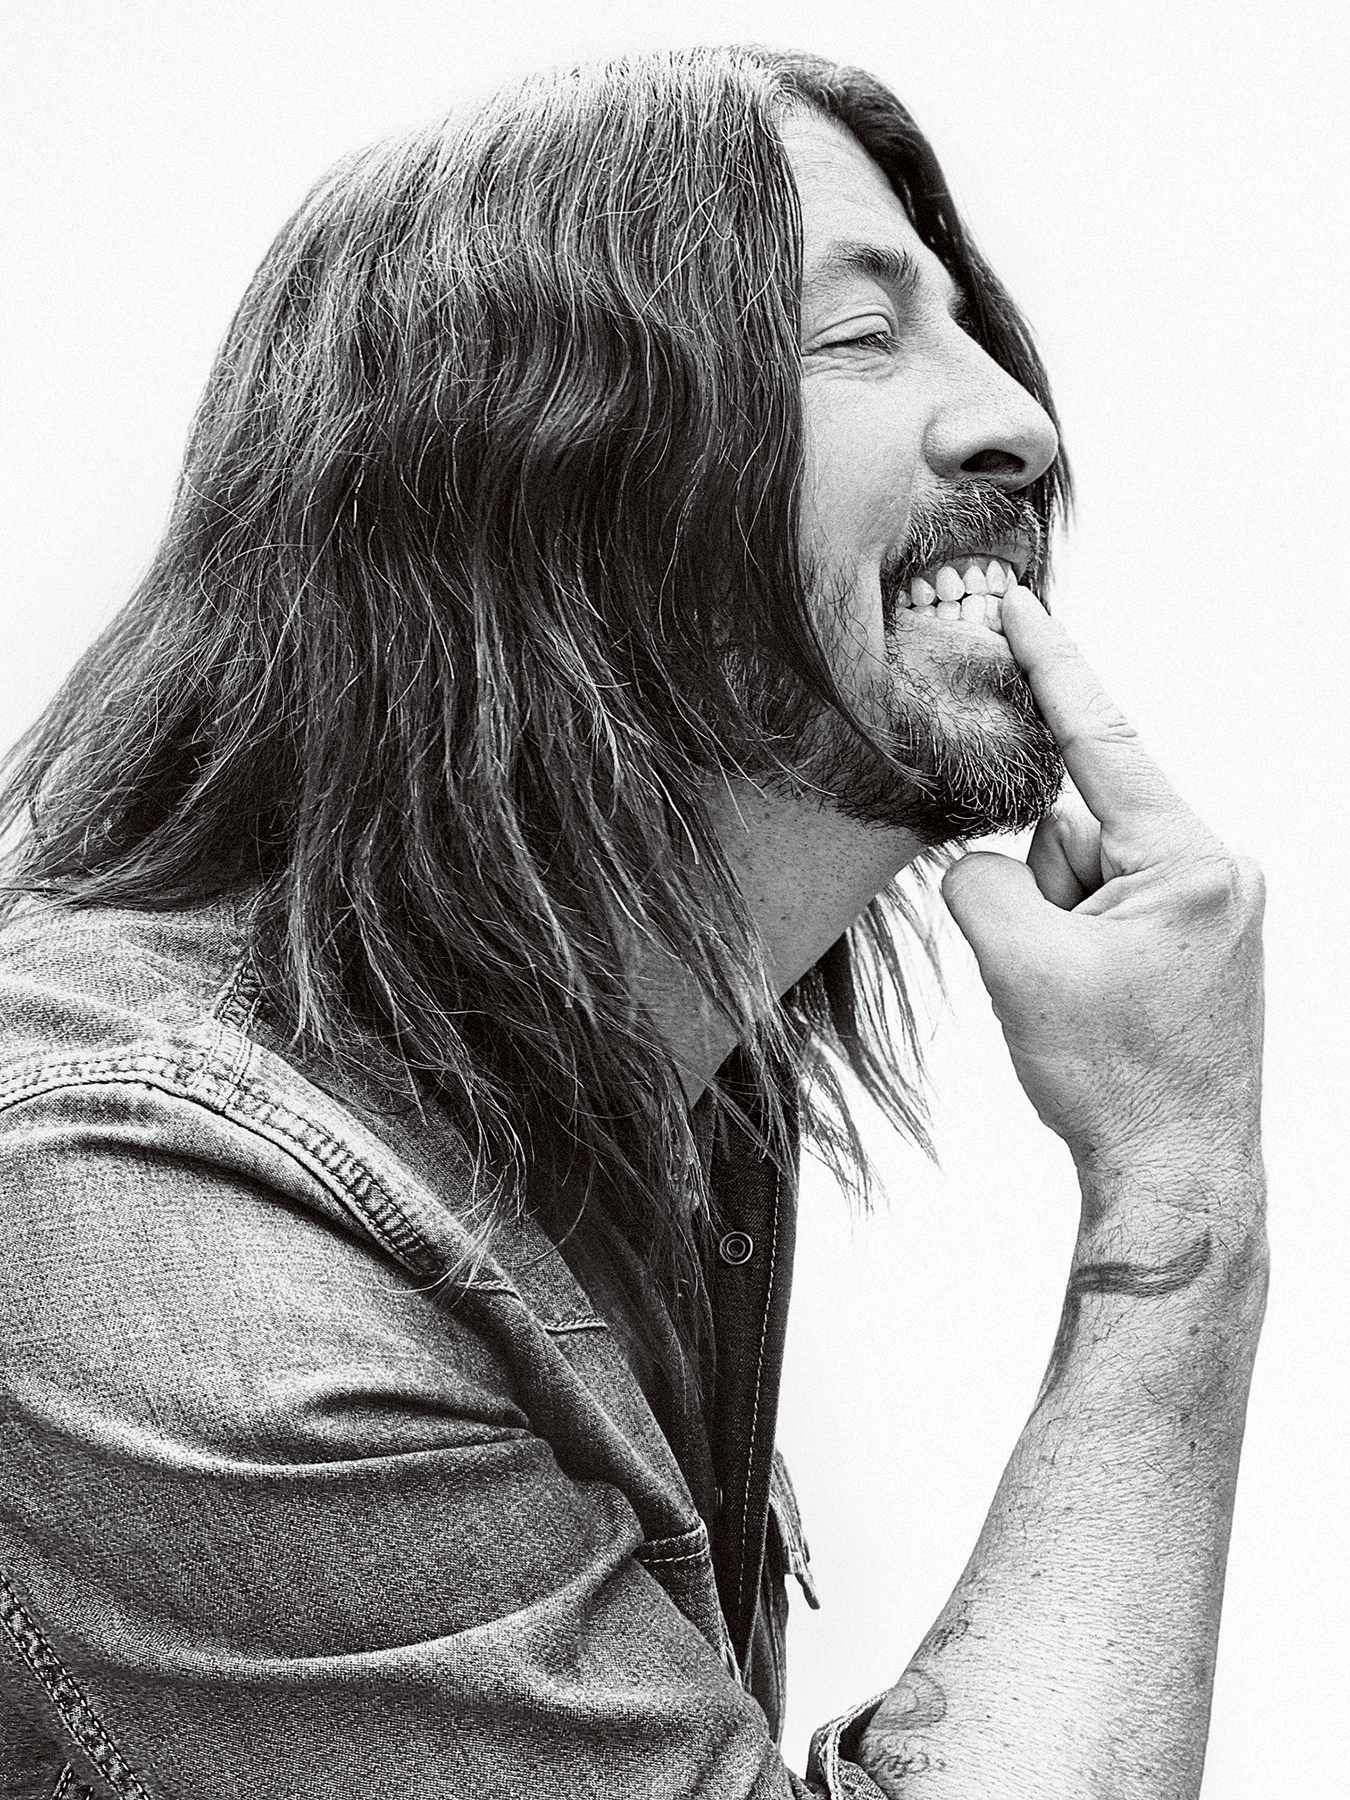 Dave Grohl, photographed in Los Angeles on June 10th, 2021.